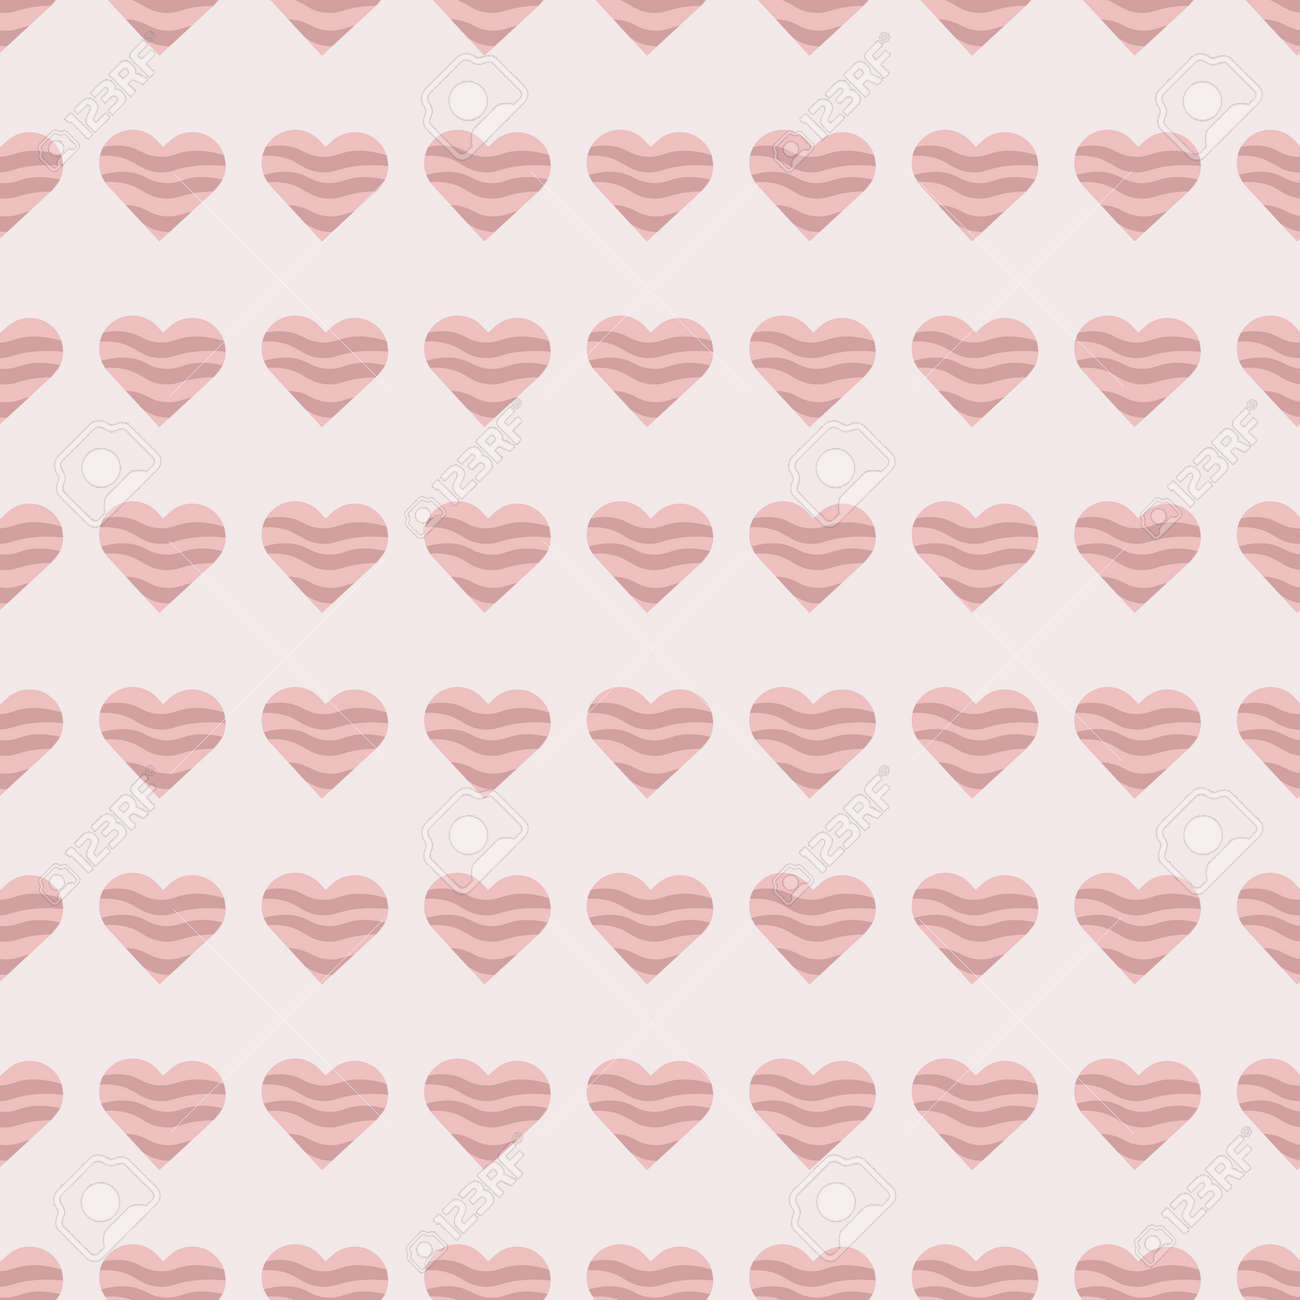 beautiful cute seamless pattern with pink heart shapes for valentines day holiday for textile and gift paper - 161212634